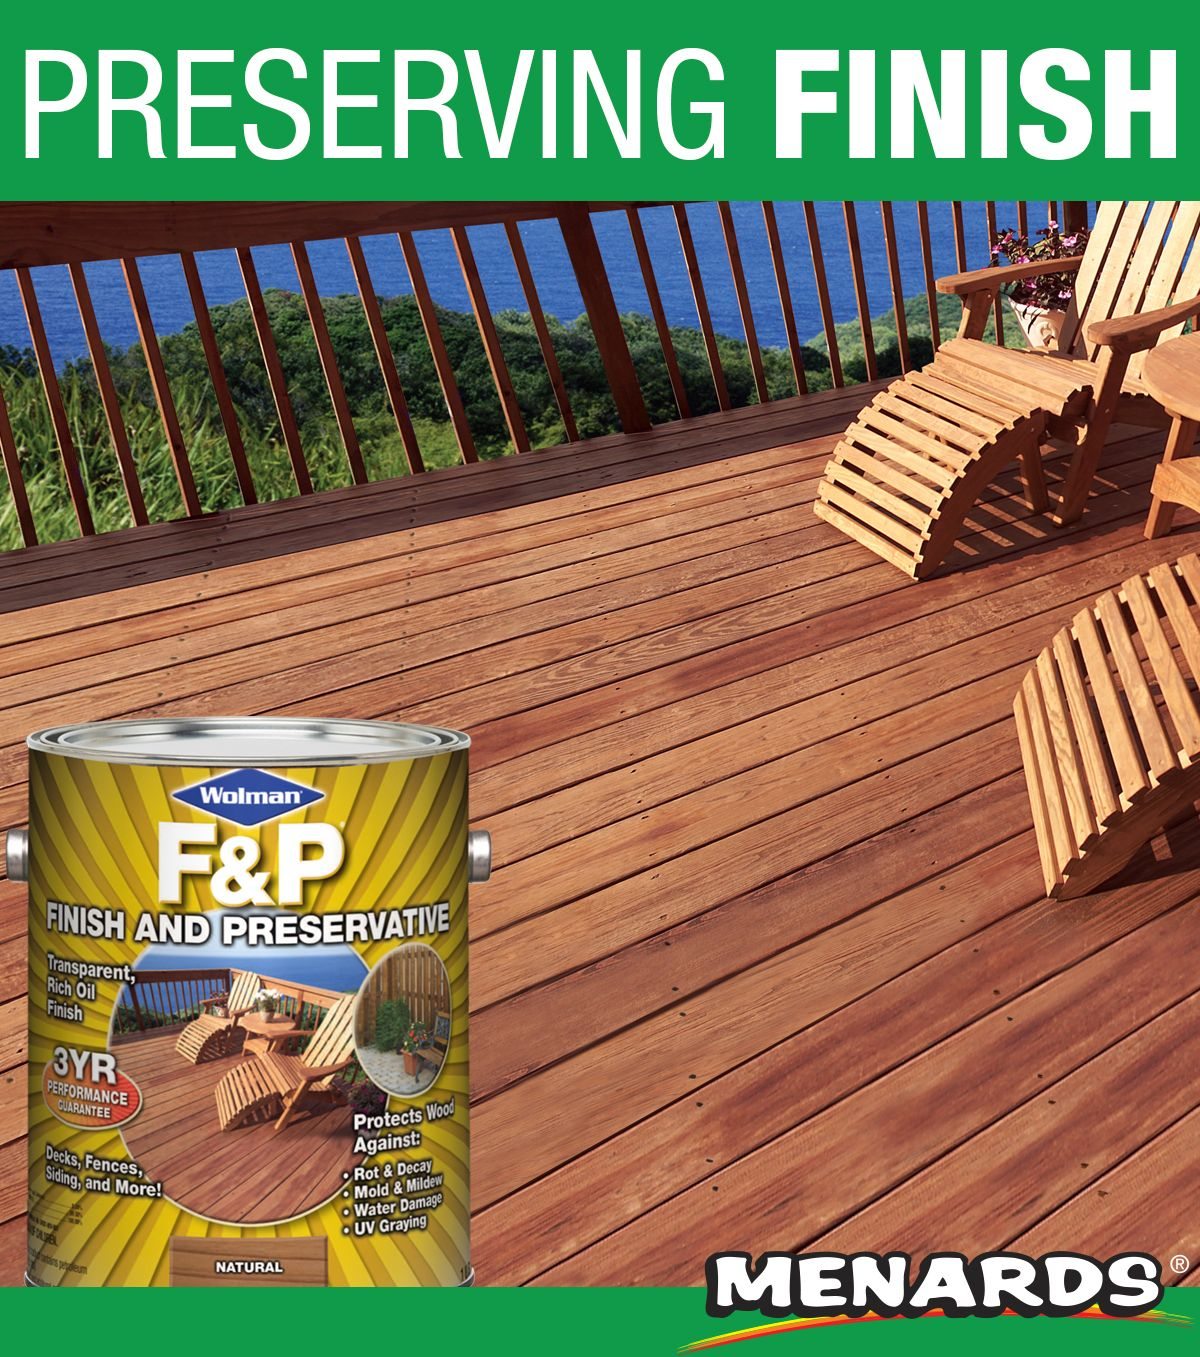 Wolman F P Finish And Preservative Is A Premium Performance Oil Based Wood Finish Making It An Epa Registered Exterior Wood Stain Exterior Wood Staining Wood